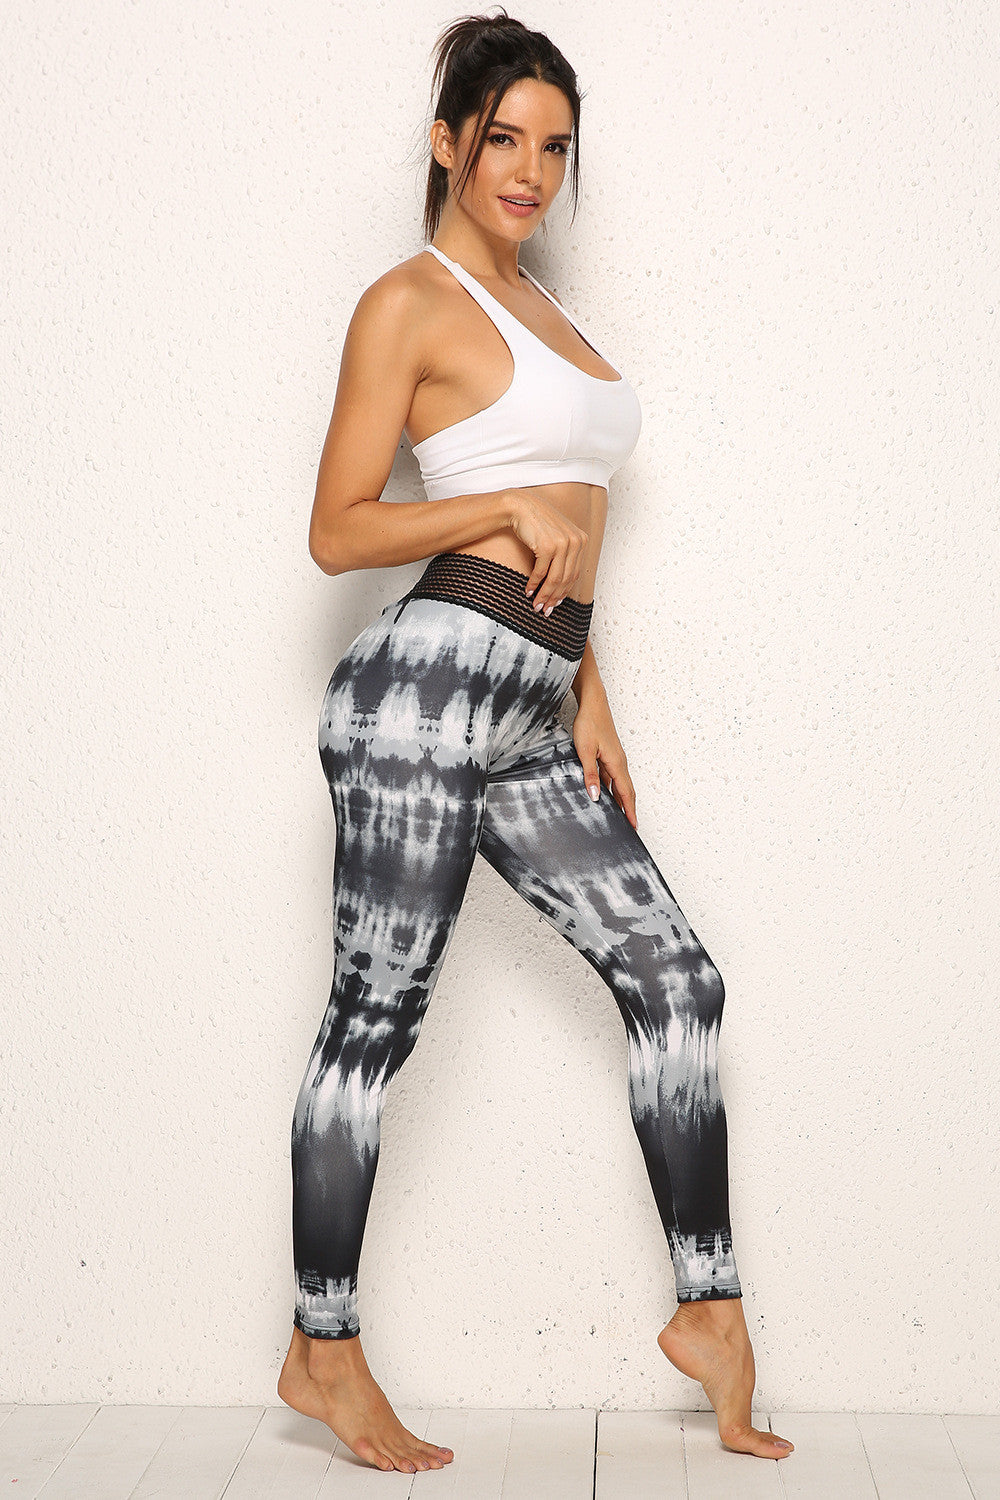 'Vital' Fitness Leggings